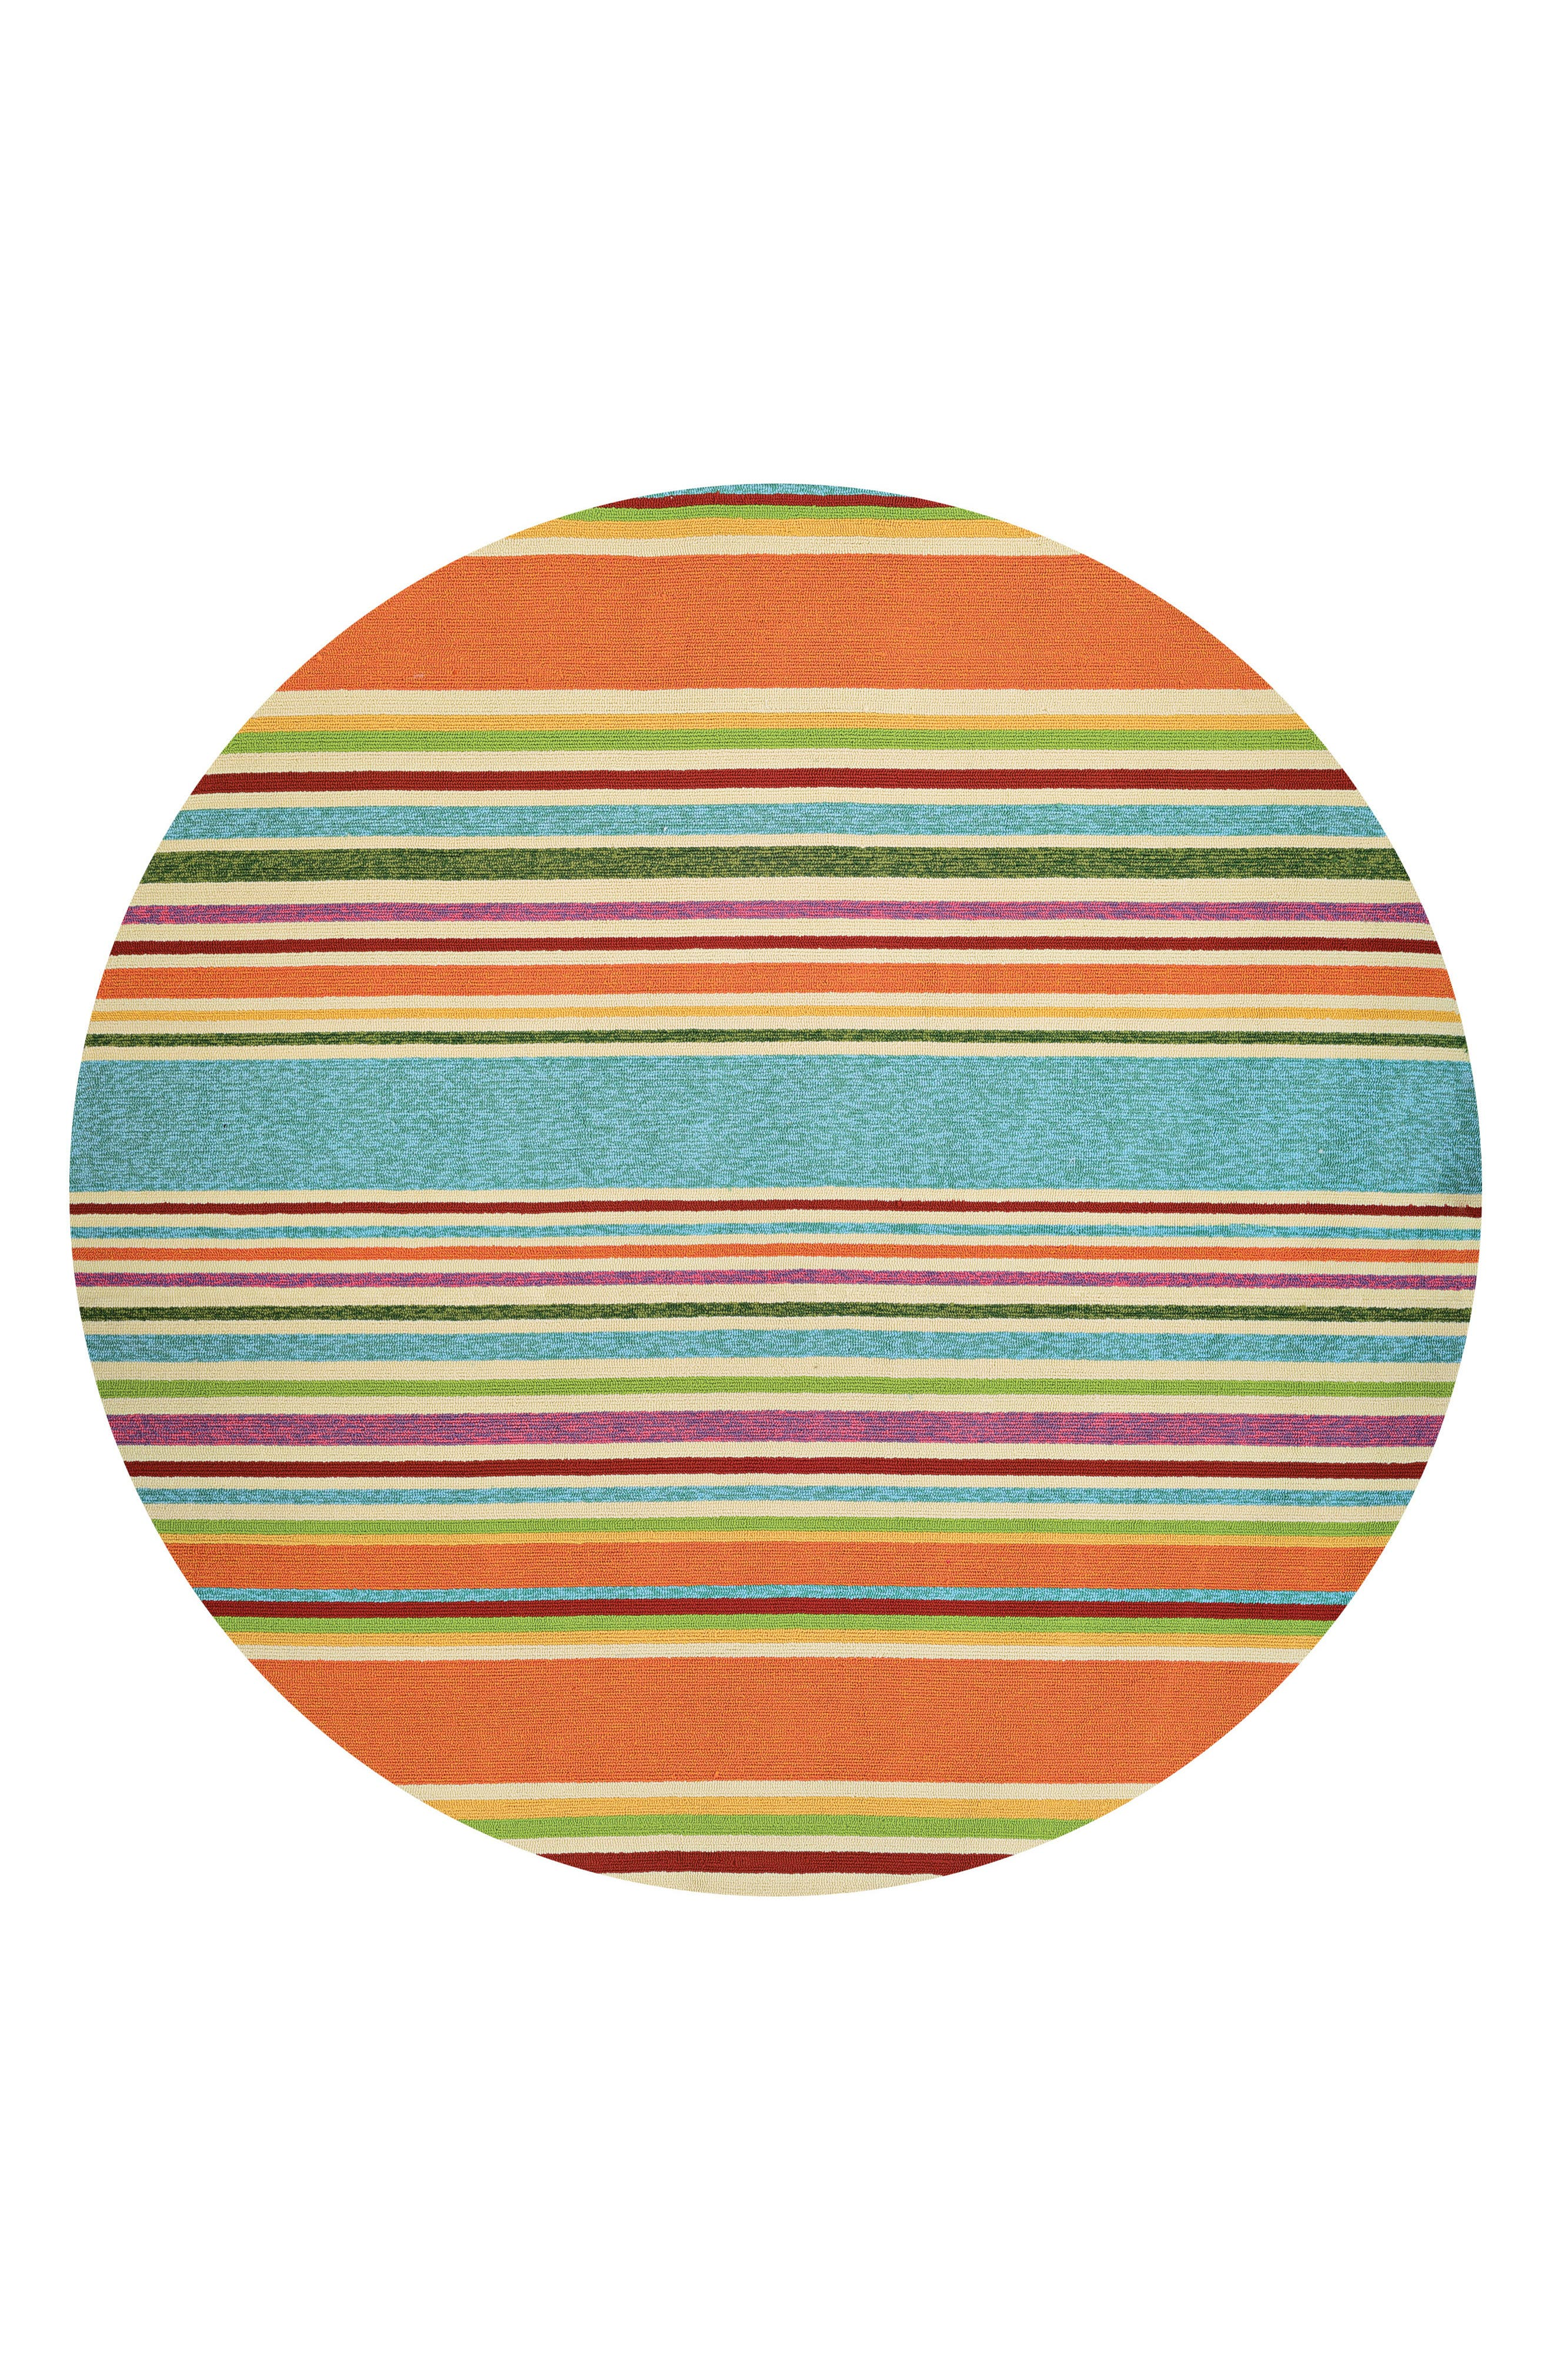 Fresh, delightful rainbow stripes enliven a versatile rug hooked in fade-resistant polypropylene, making it great for high-traffic areas both inside and outside. Style Name: Couristan Sherbet Stripe Indoor/outdoor Rug. Style Number: 5363882. Available in stores.